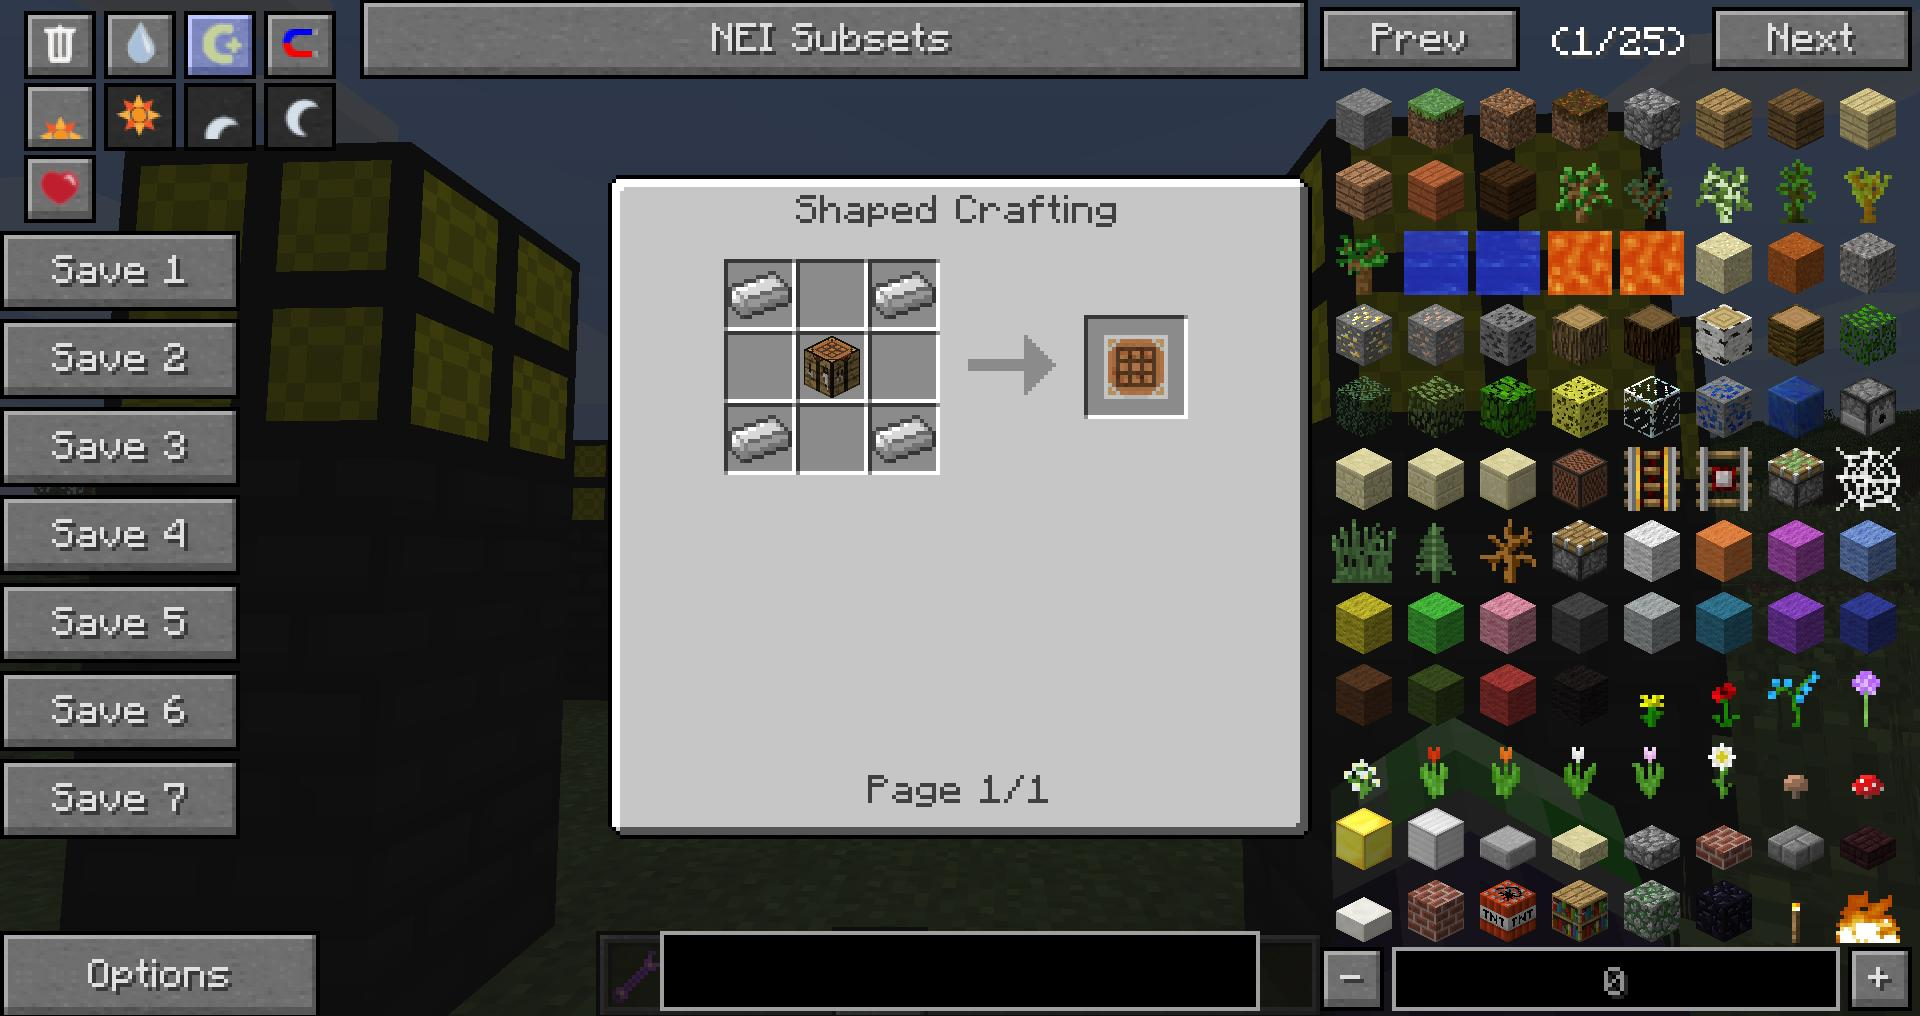 javaw%202014 06 15%2016 29 44 79 ChaosCraft Recipes